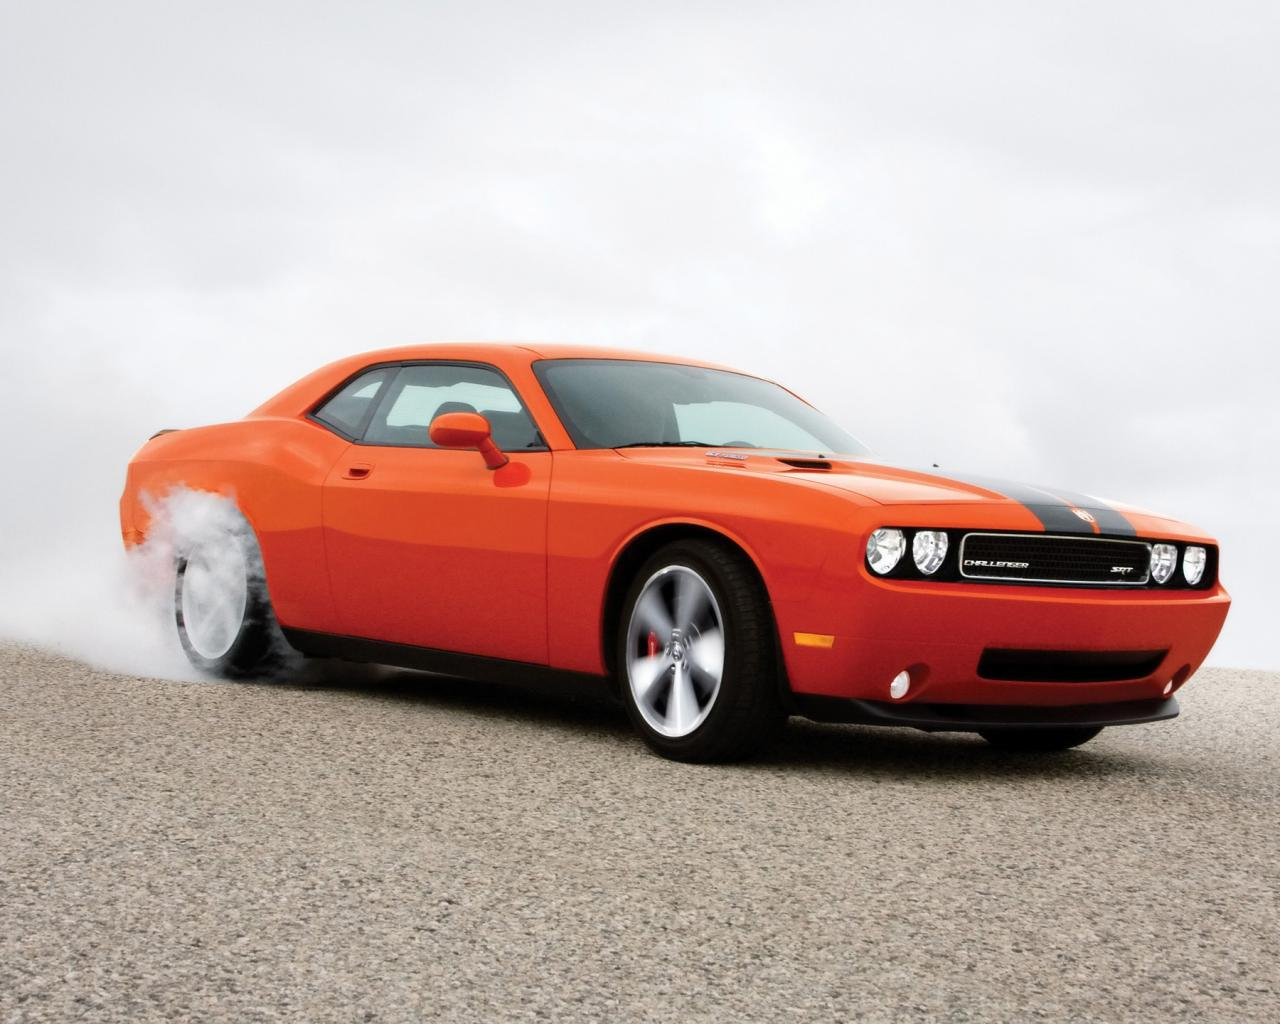 2008 Dodge Challenger Srt8 Burnout Side Angle 1280x1024